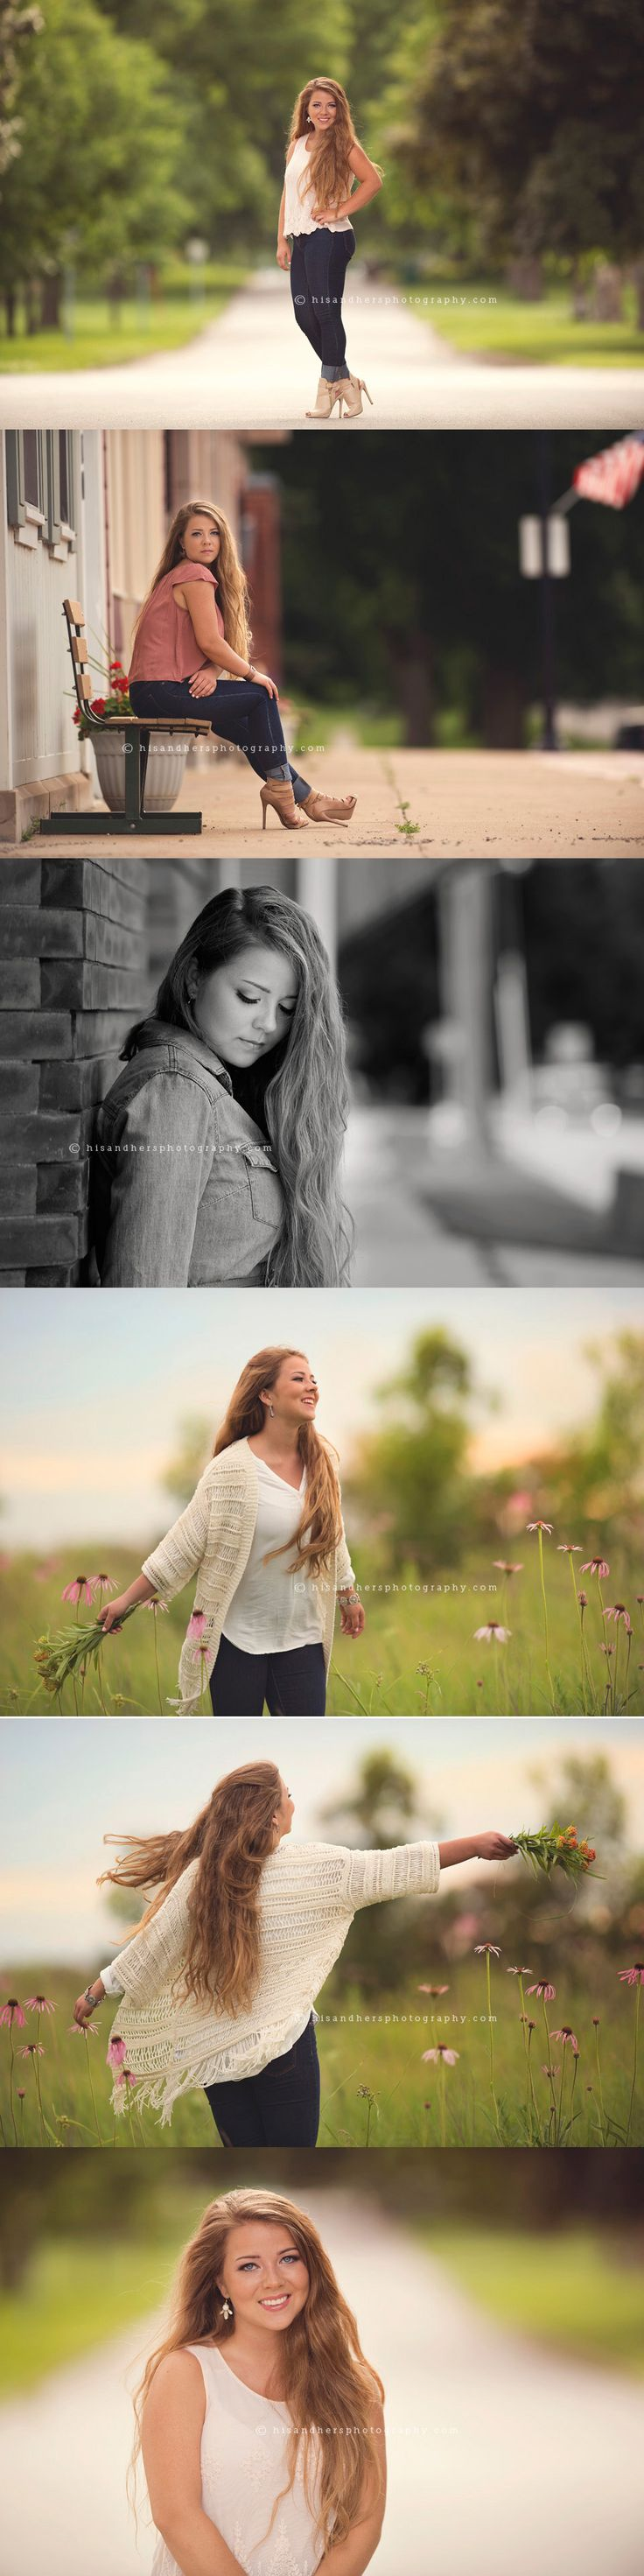 Class of 2016 senior portraits #seniorpics #classof2016 Des Moines, Iowa senior portrait photographer, Randy Milder | His & Hers